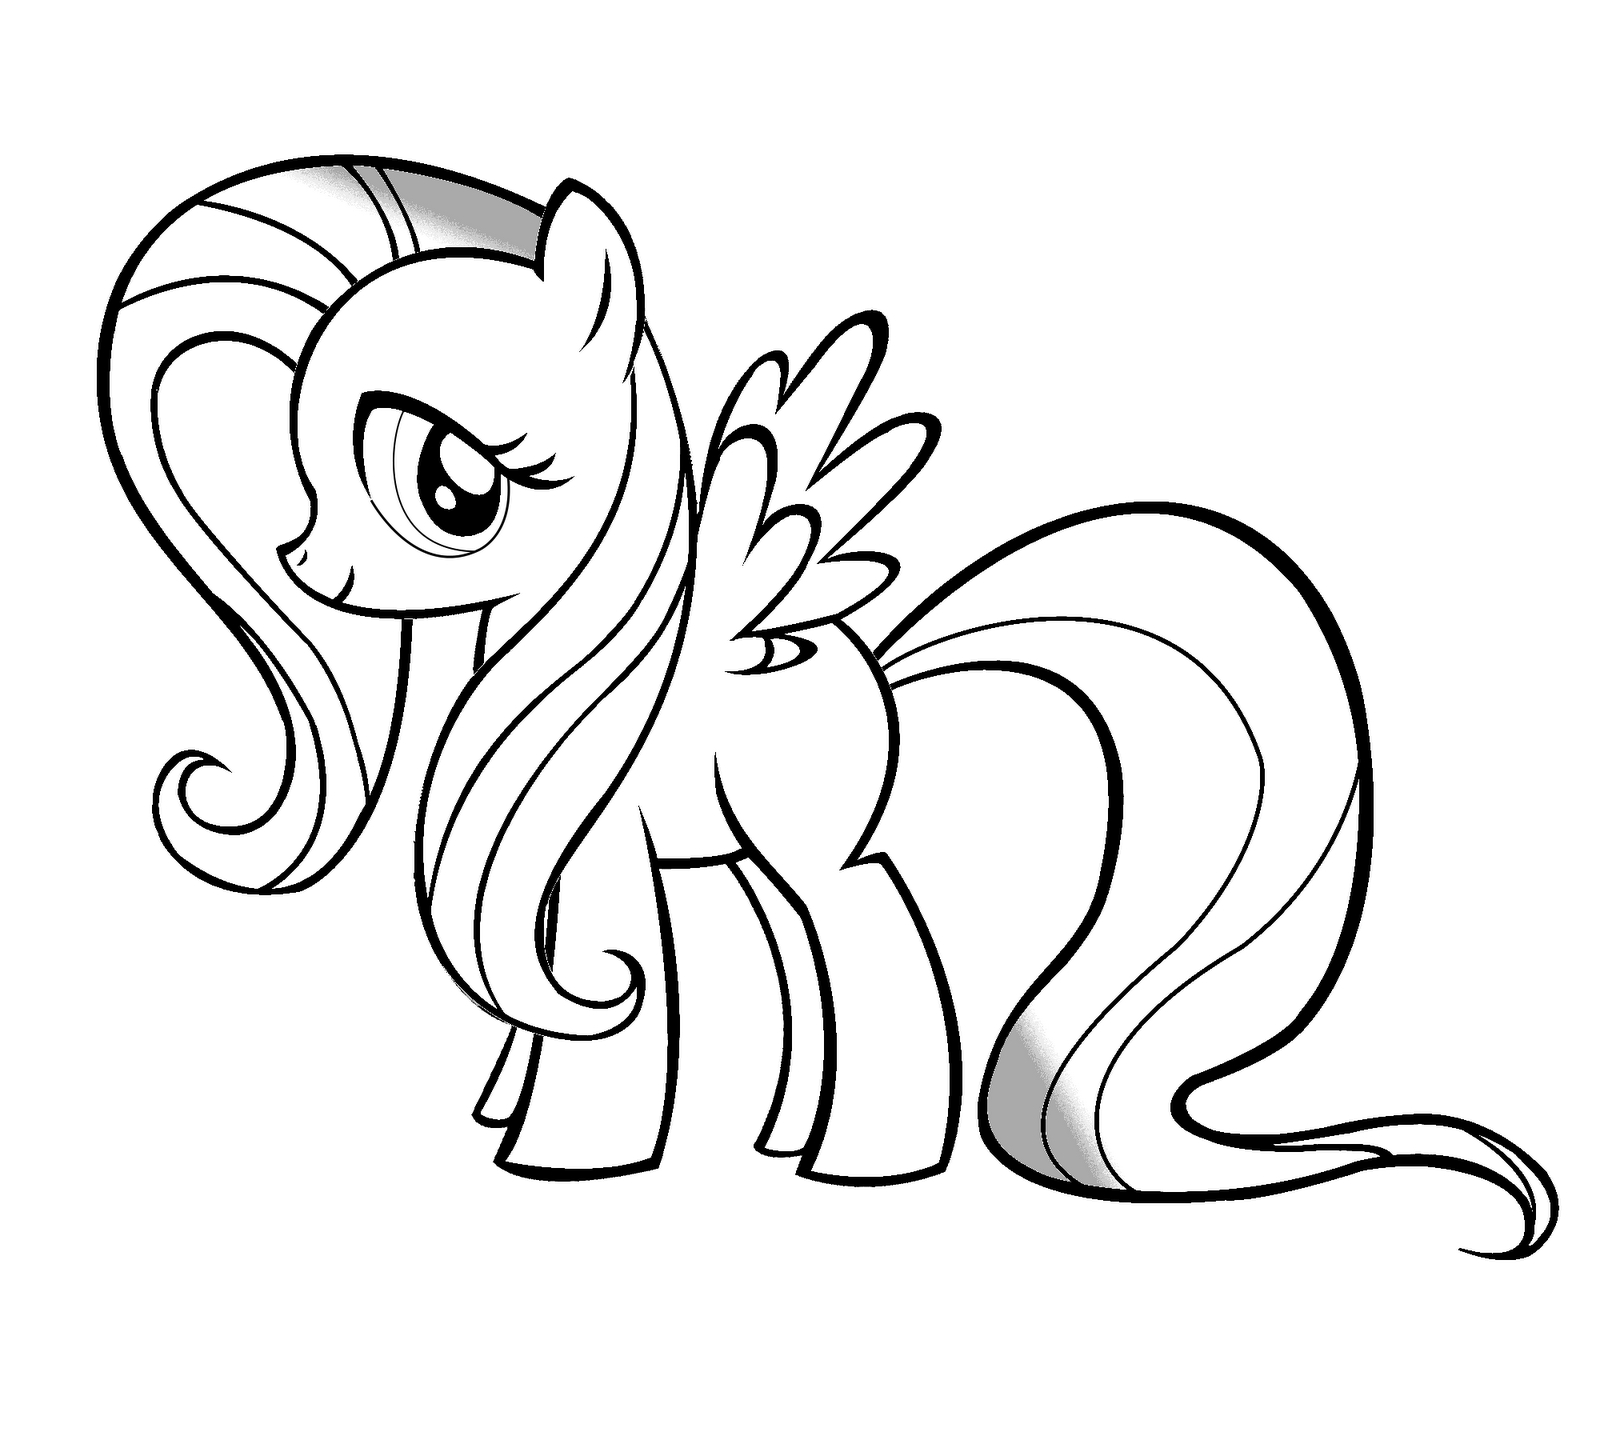 fluttershy coloring pages - fluttershy